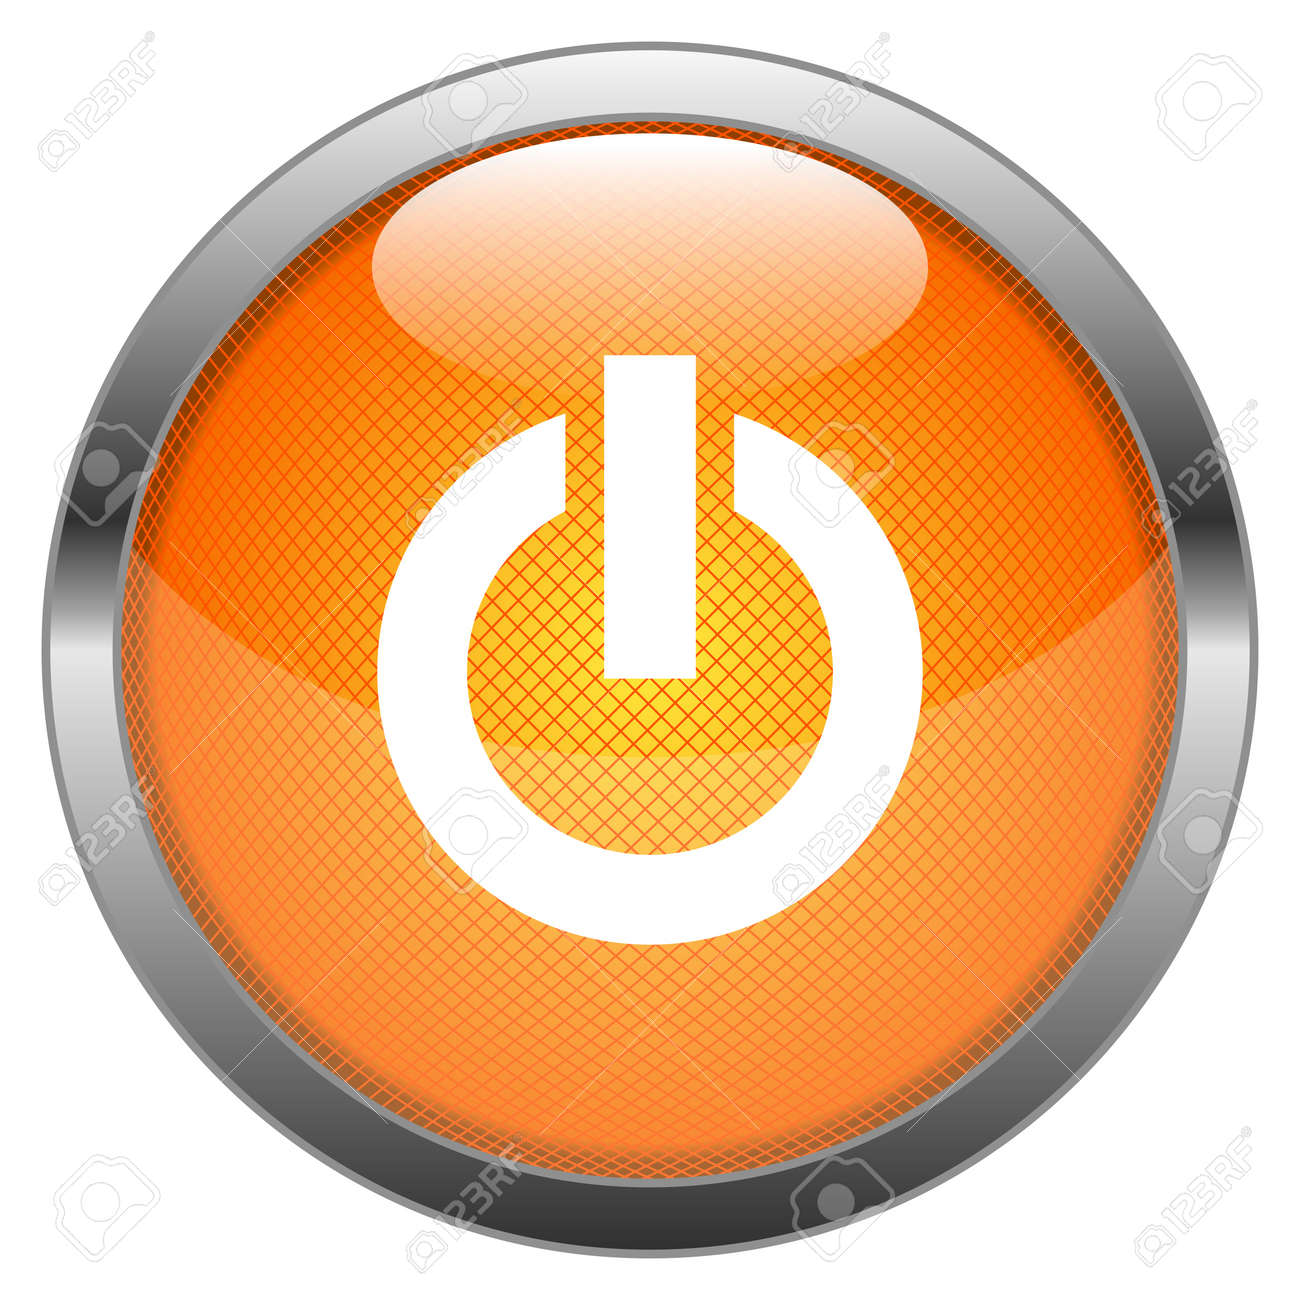 Button On Off Switch Stock Vector - 16404107